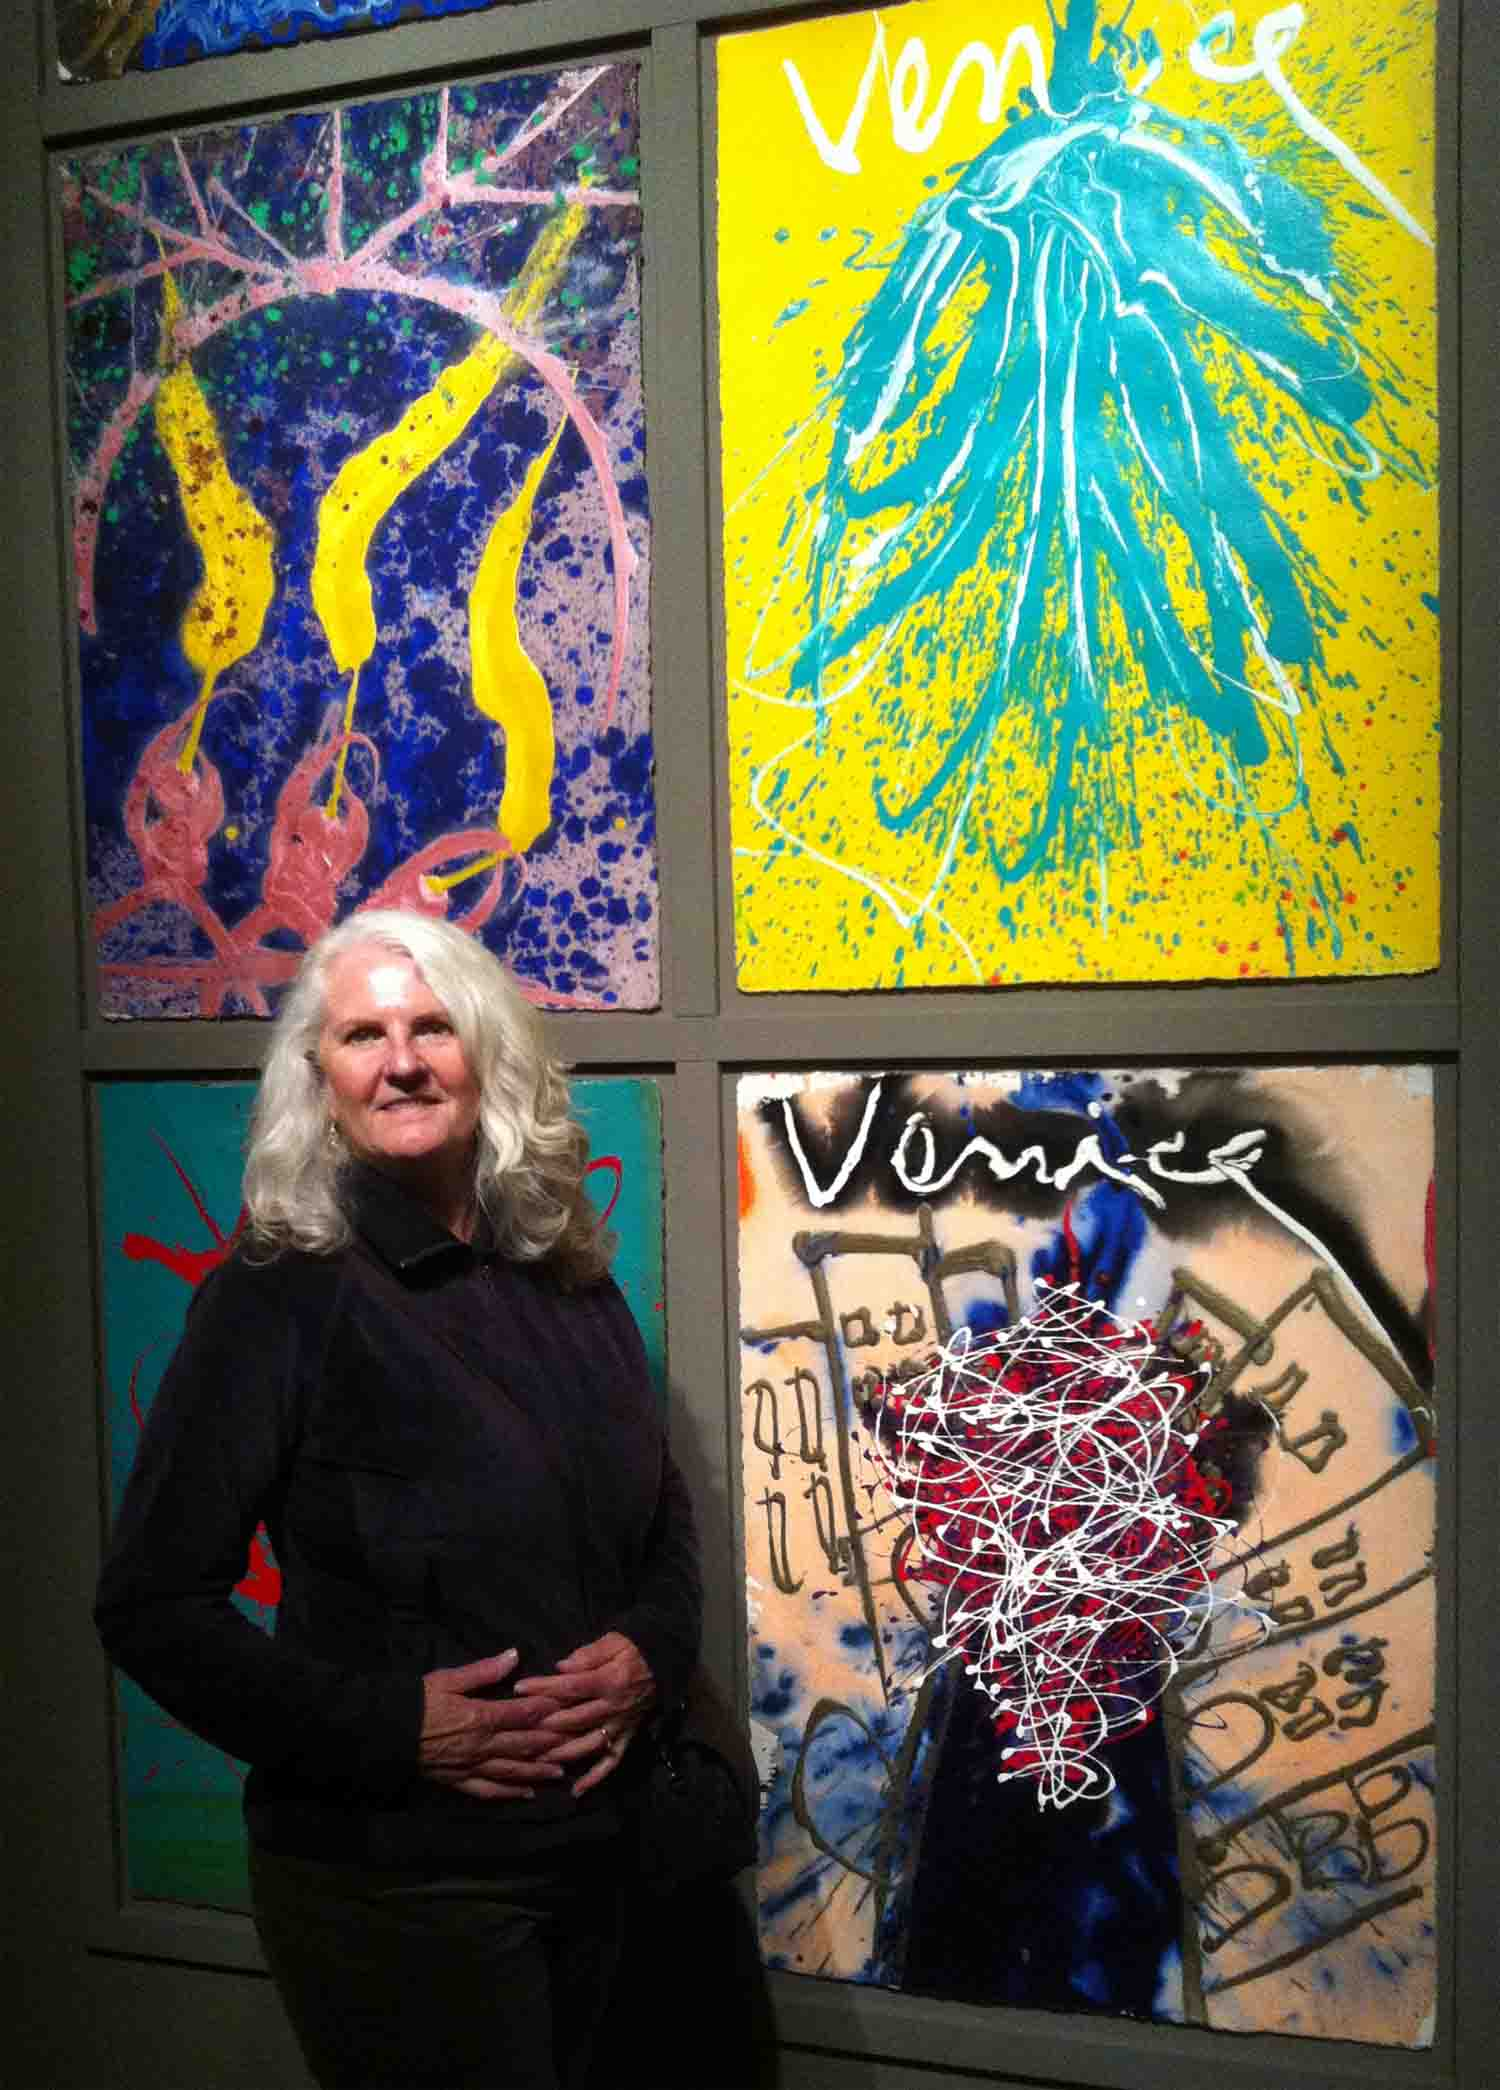 Jill in front of Chihuly drawings copy.jpg